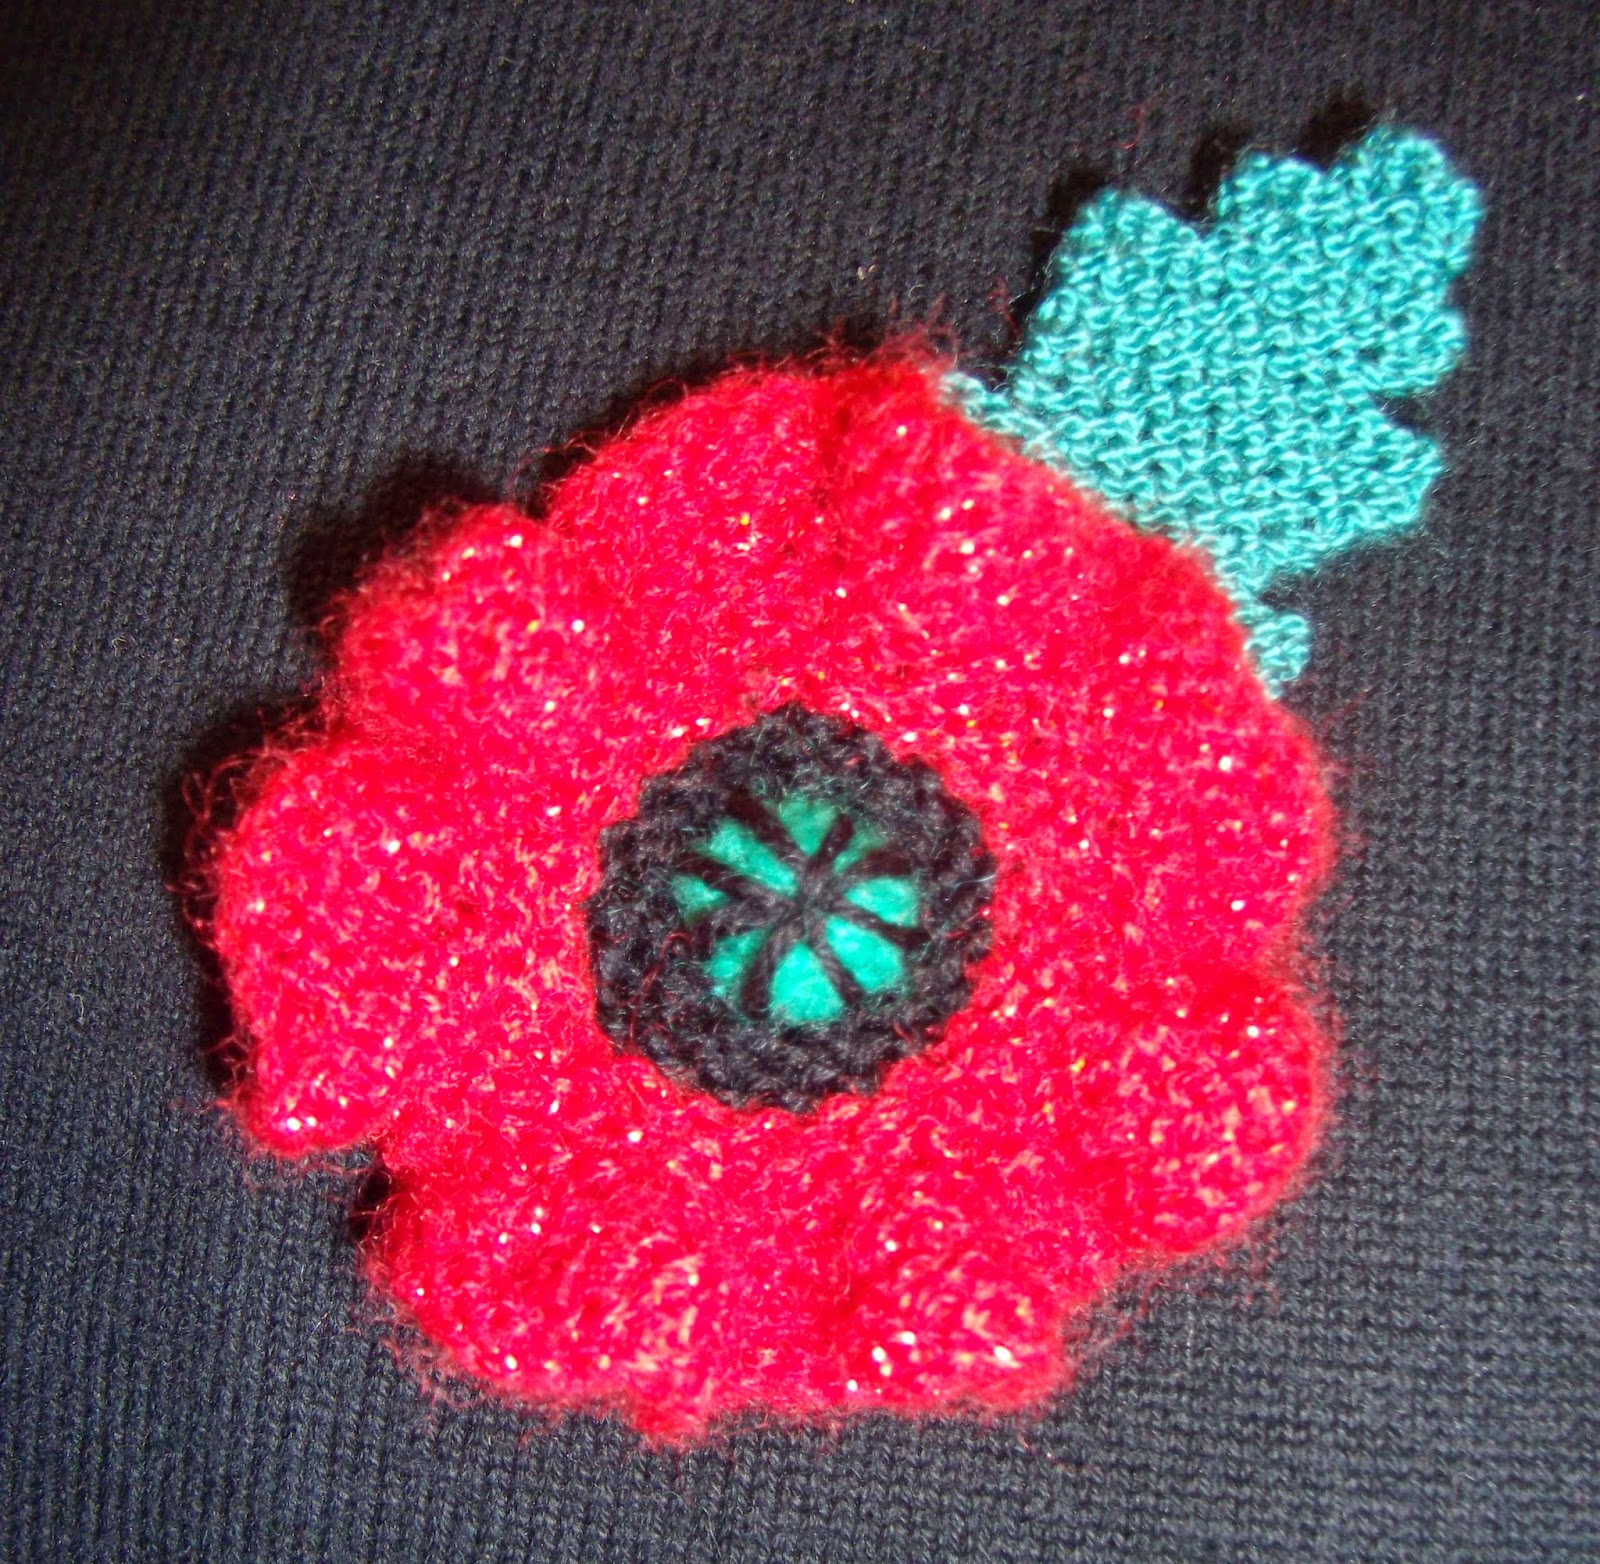 Knitting Pattern Red Poppies : Paulineknit ~ A life of hand knitting : More knitted poppies